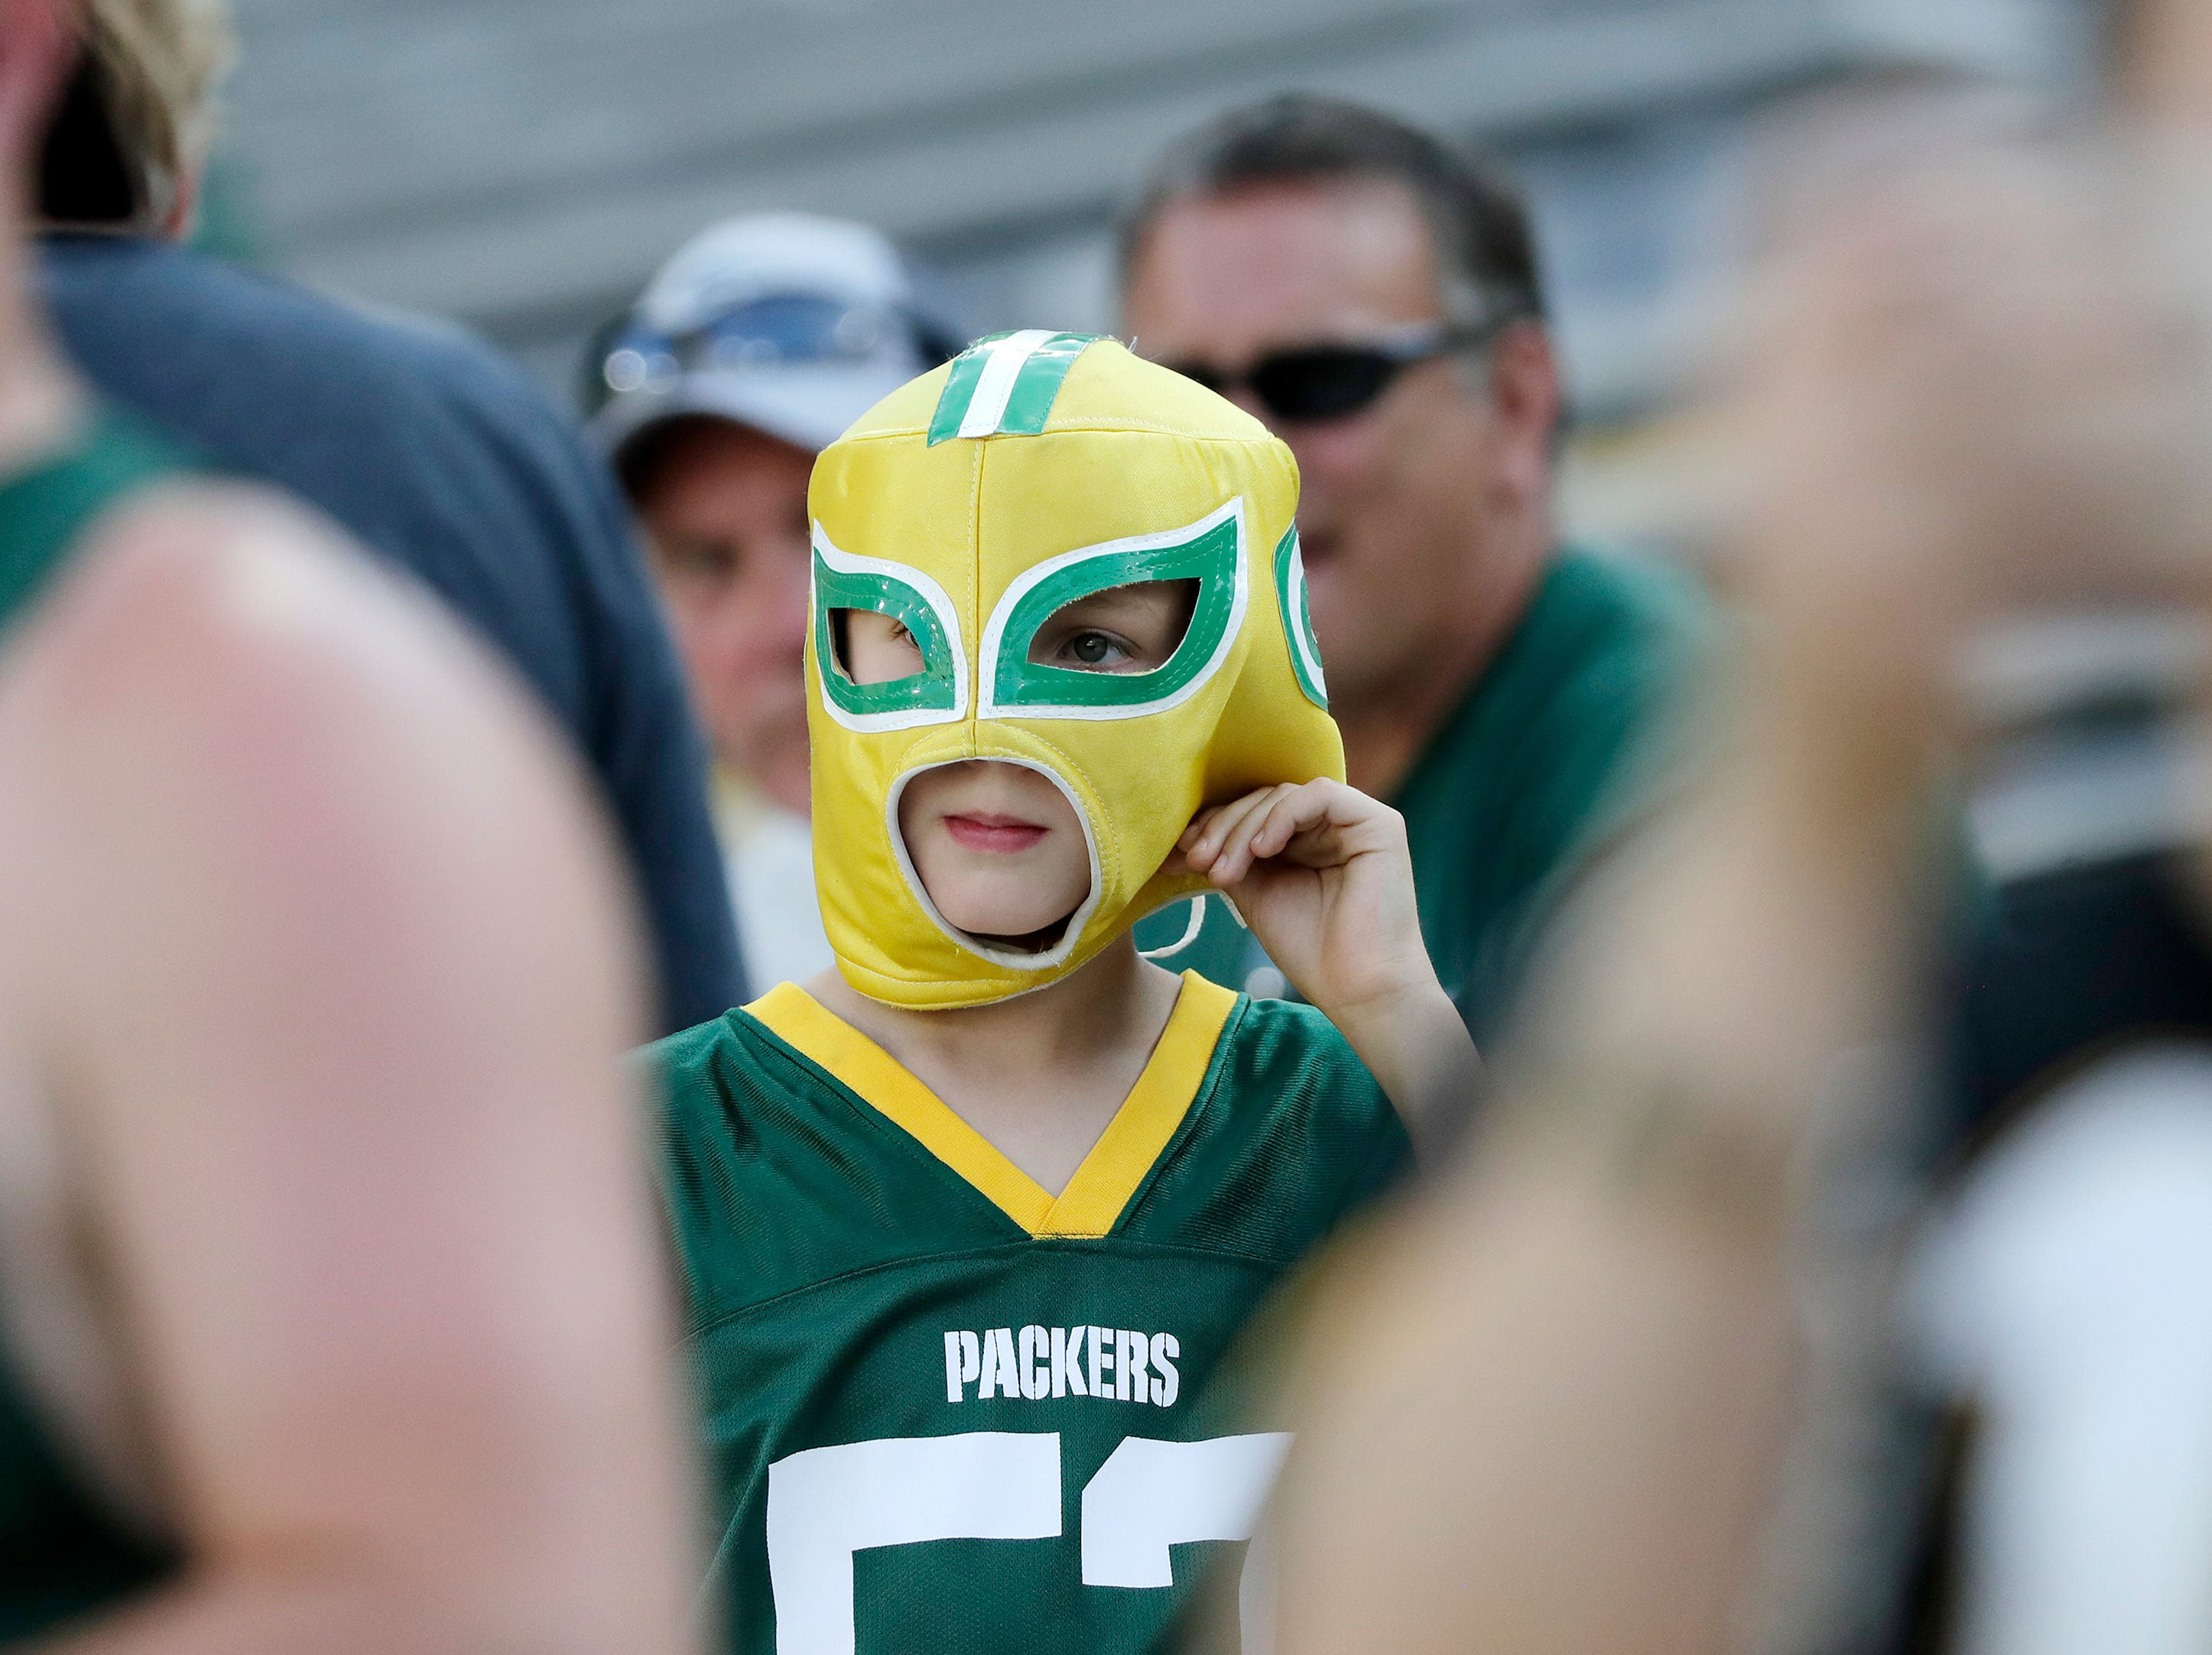 A young Packers fan watches warmups for a NFL preseason game at Lambeau Field on Thursday, August 9, 2018 in Green Bay, Wis.